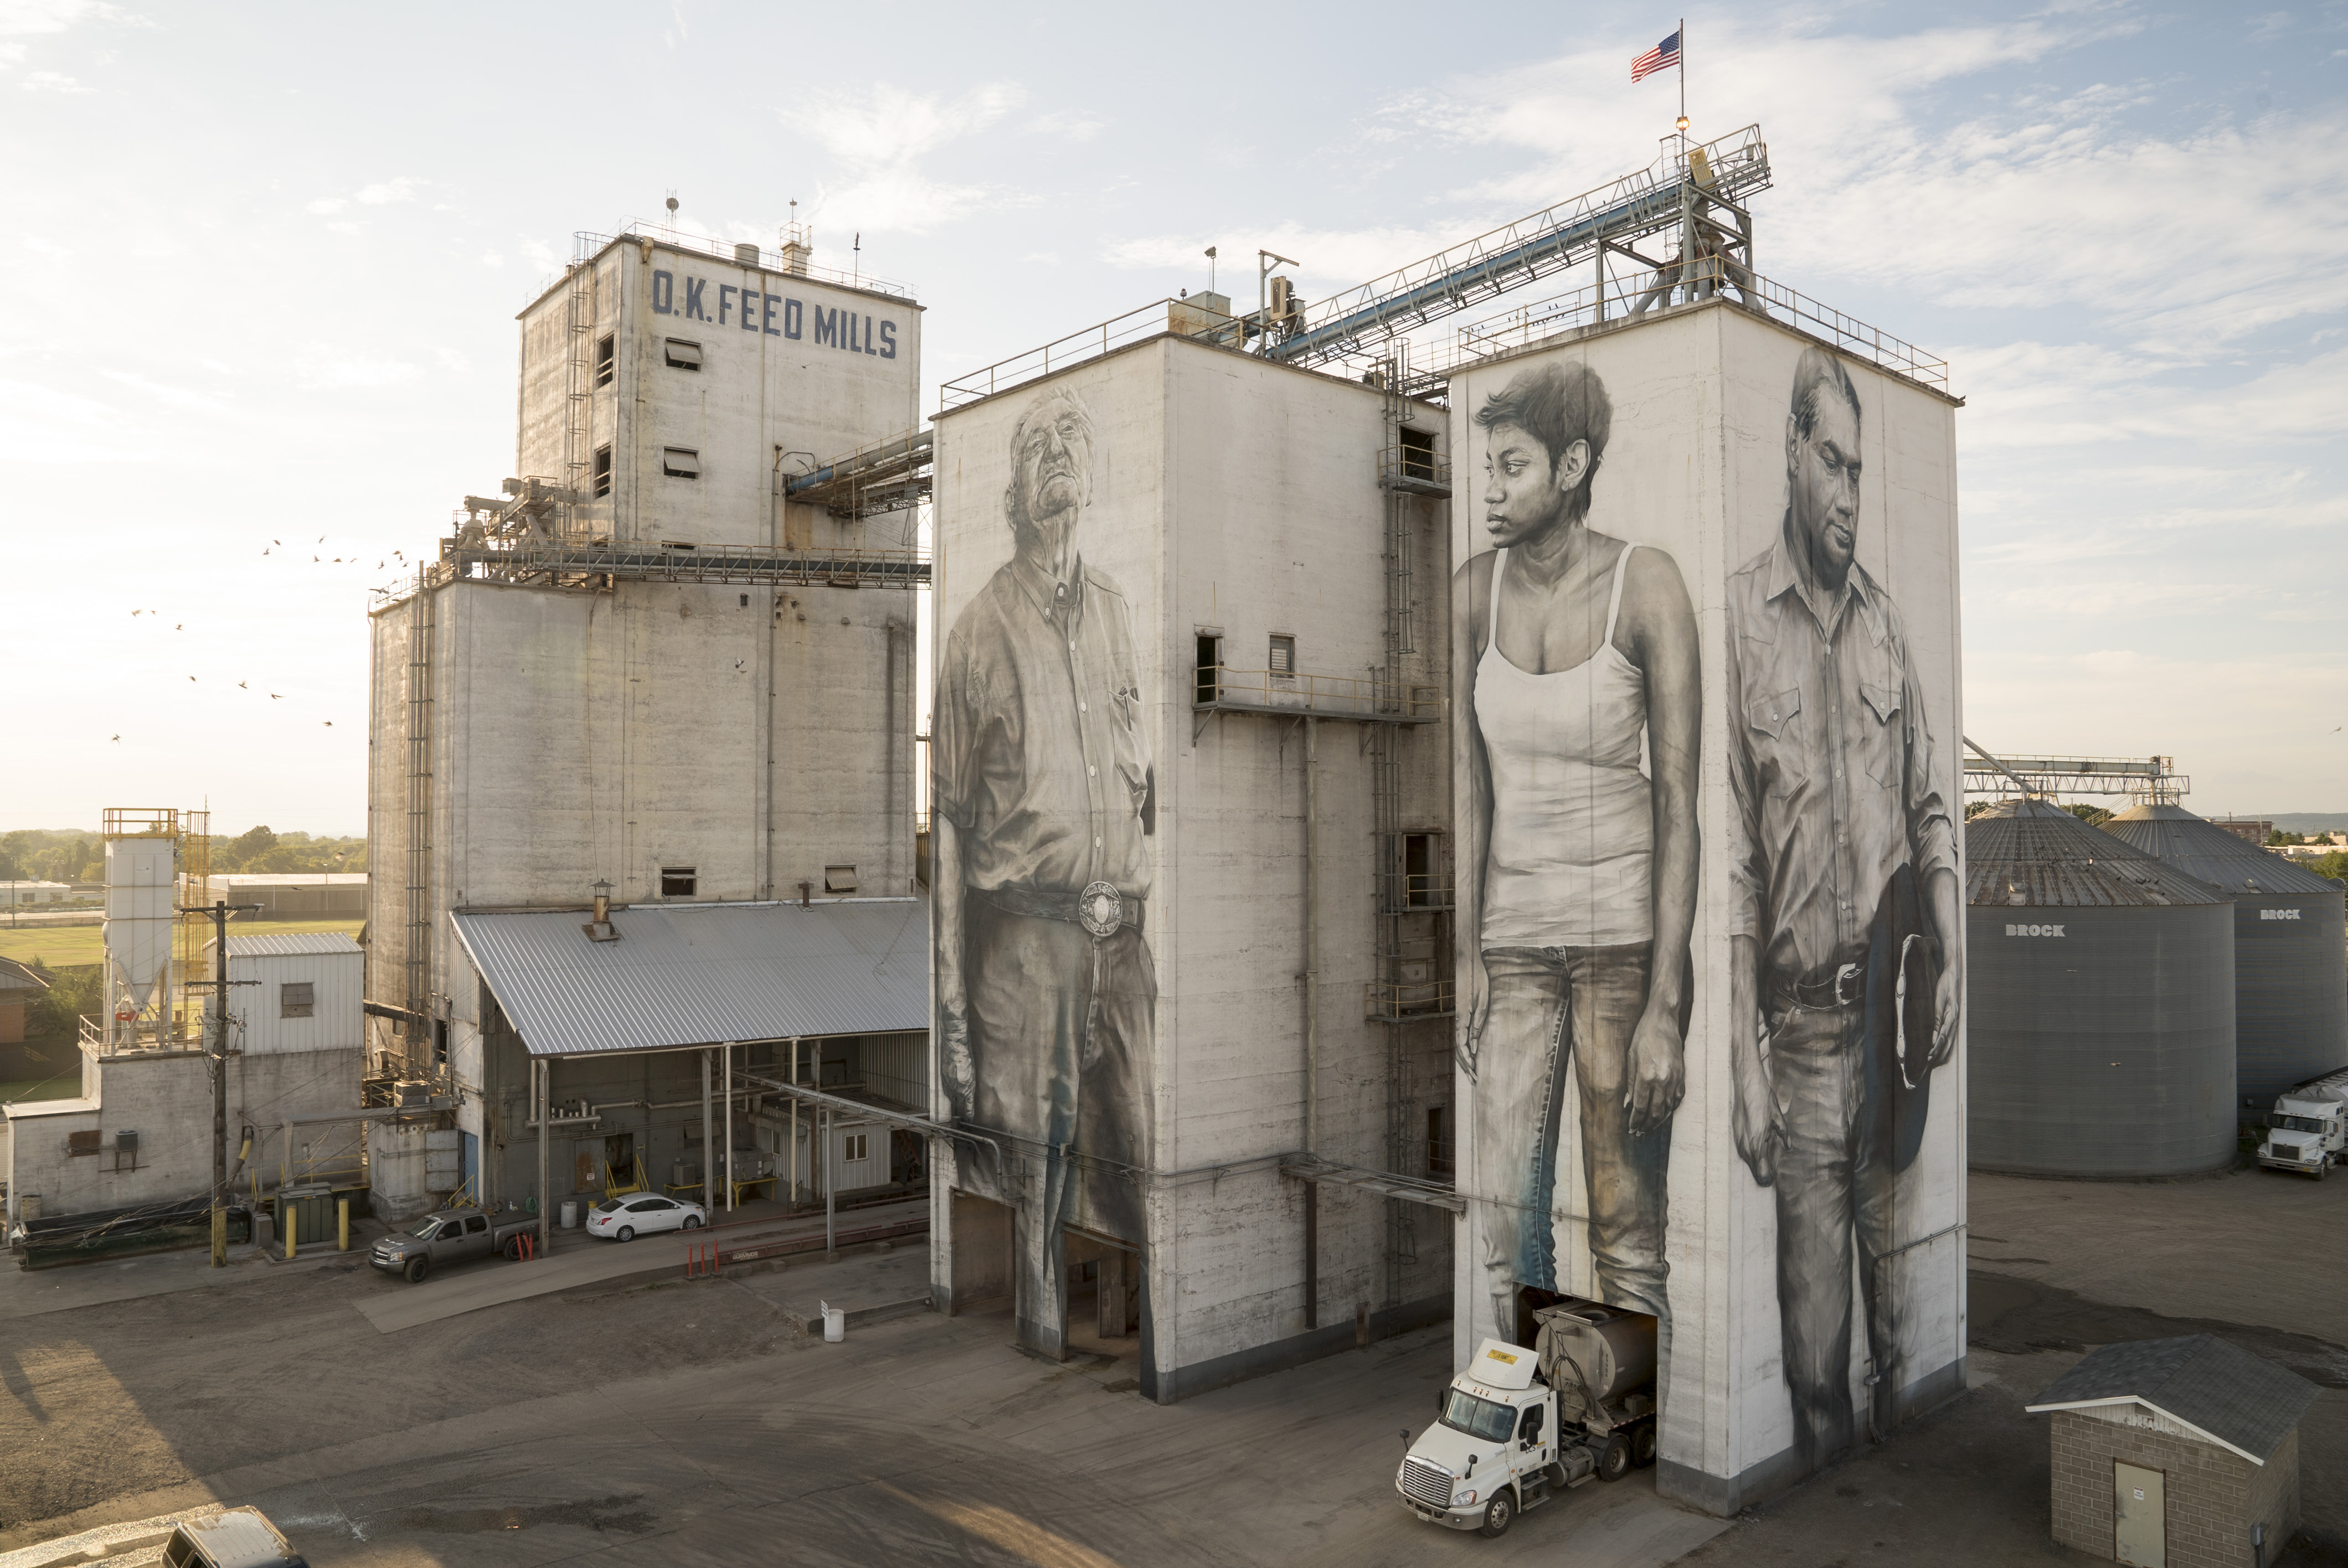 A mural created by Guido van Helten in Fort Smith, AR   Photo from Guido van Helten